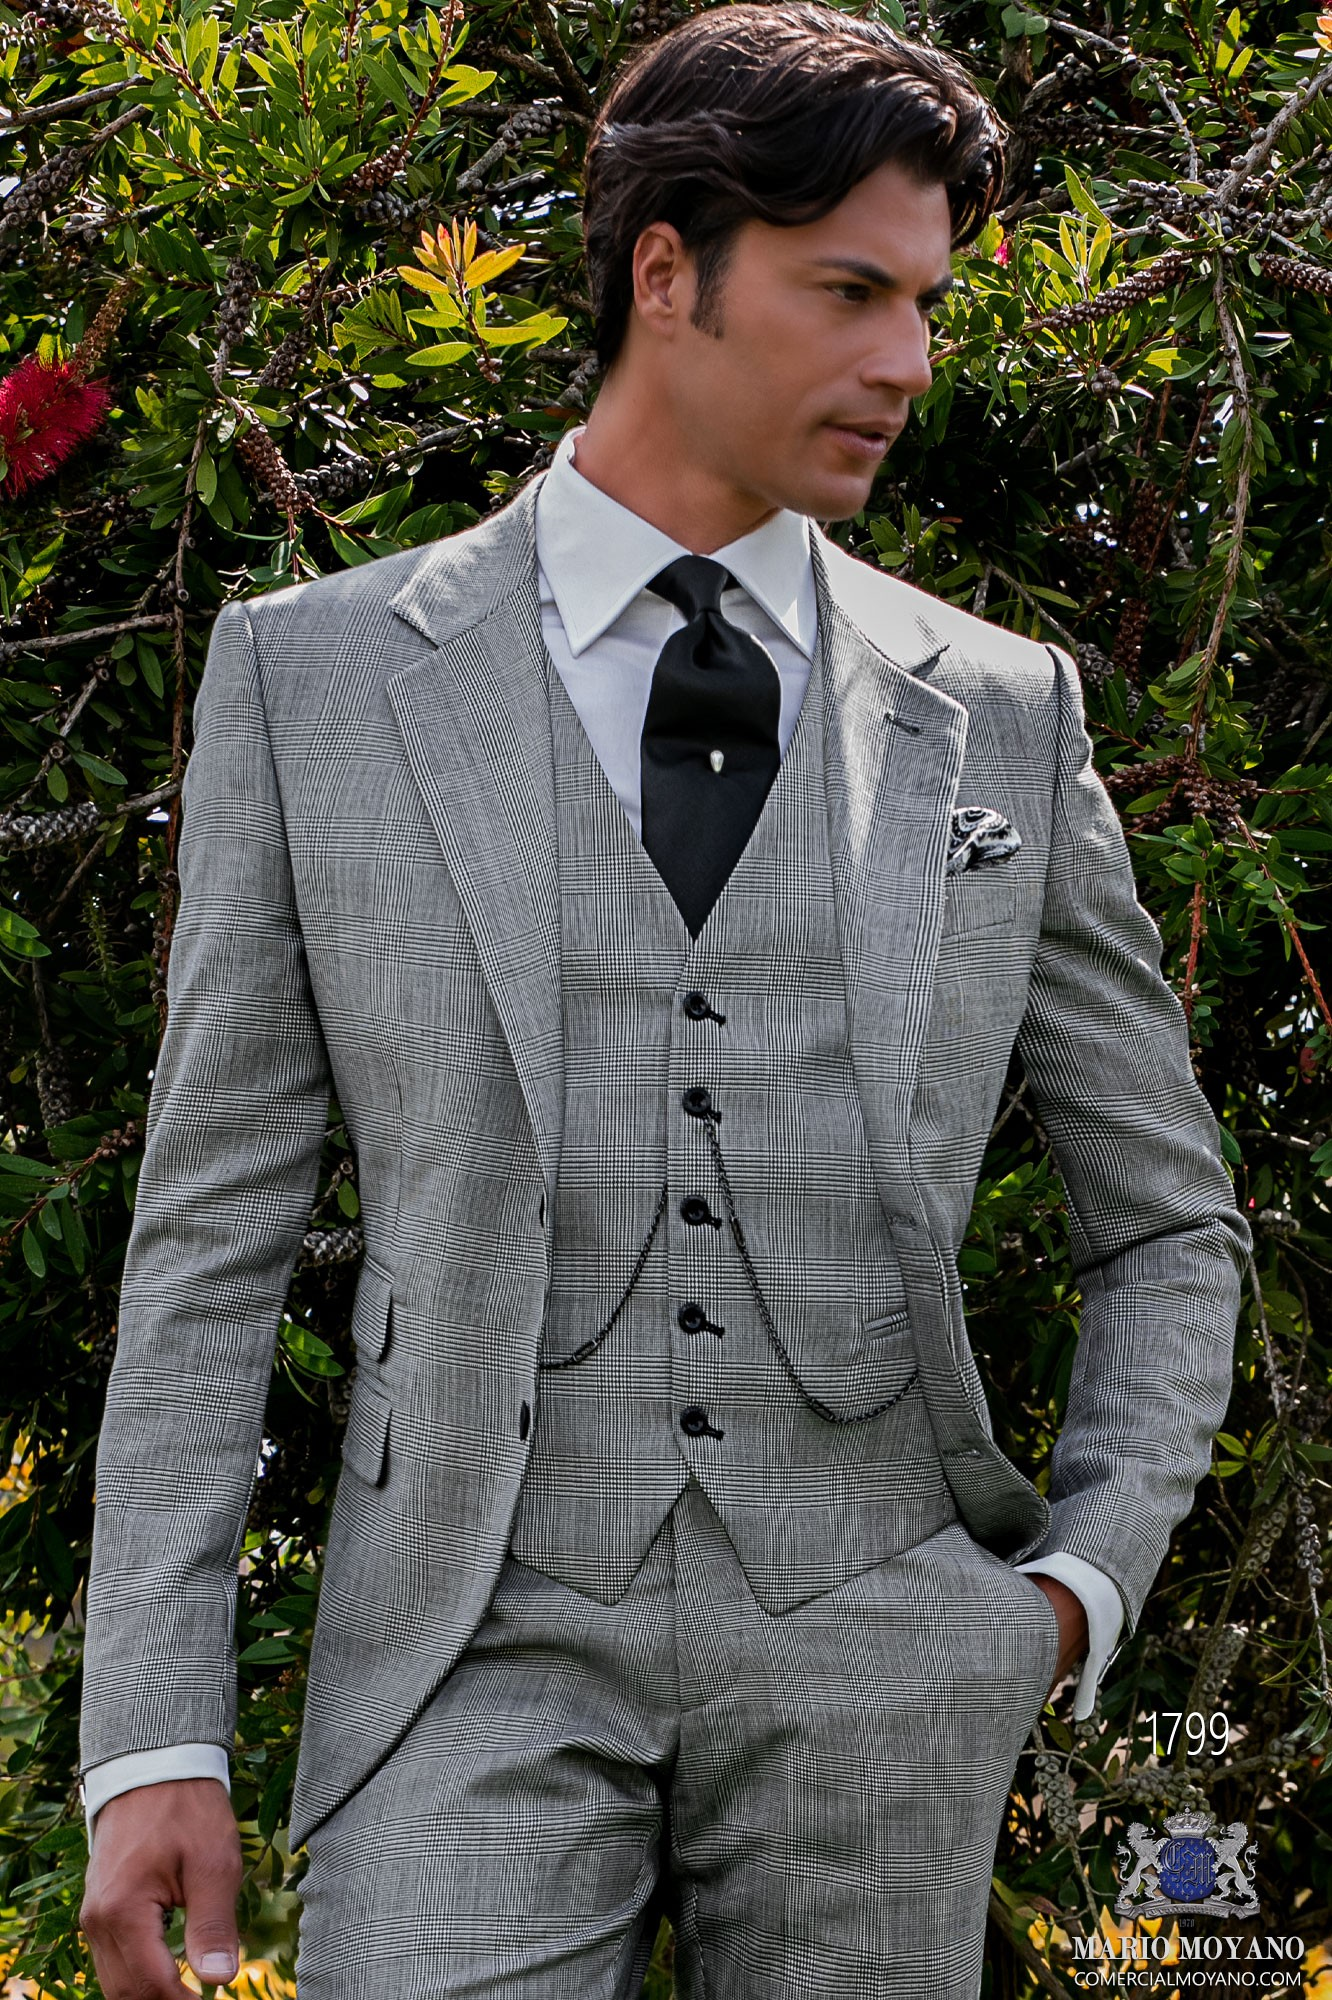 Bespoke Prince of Wales gray suit model 1799 Ottavio Nuccio Gala